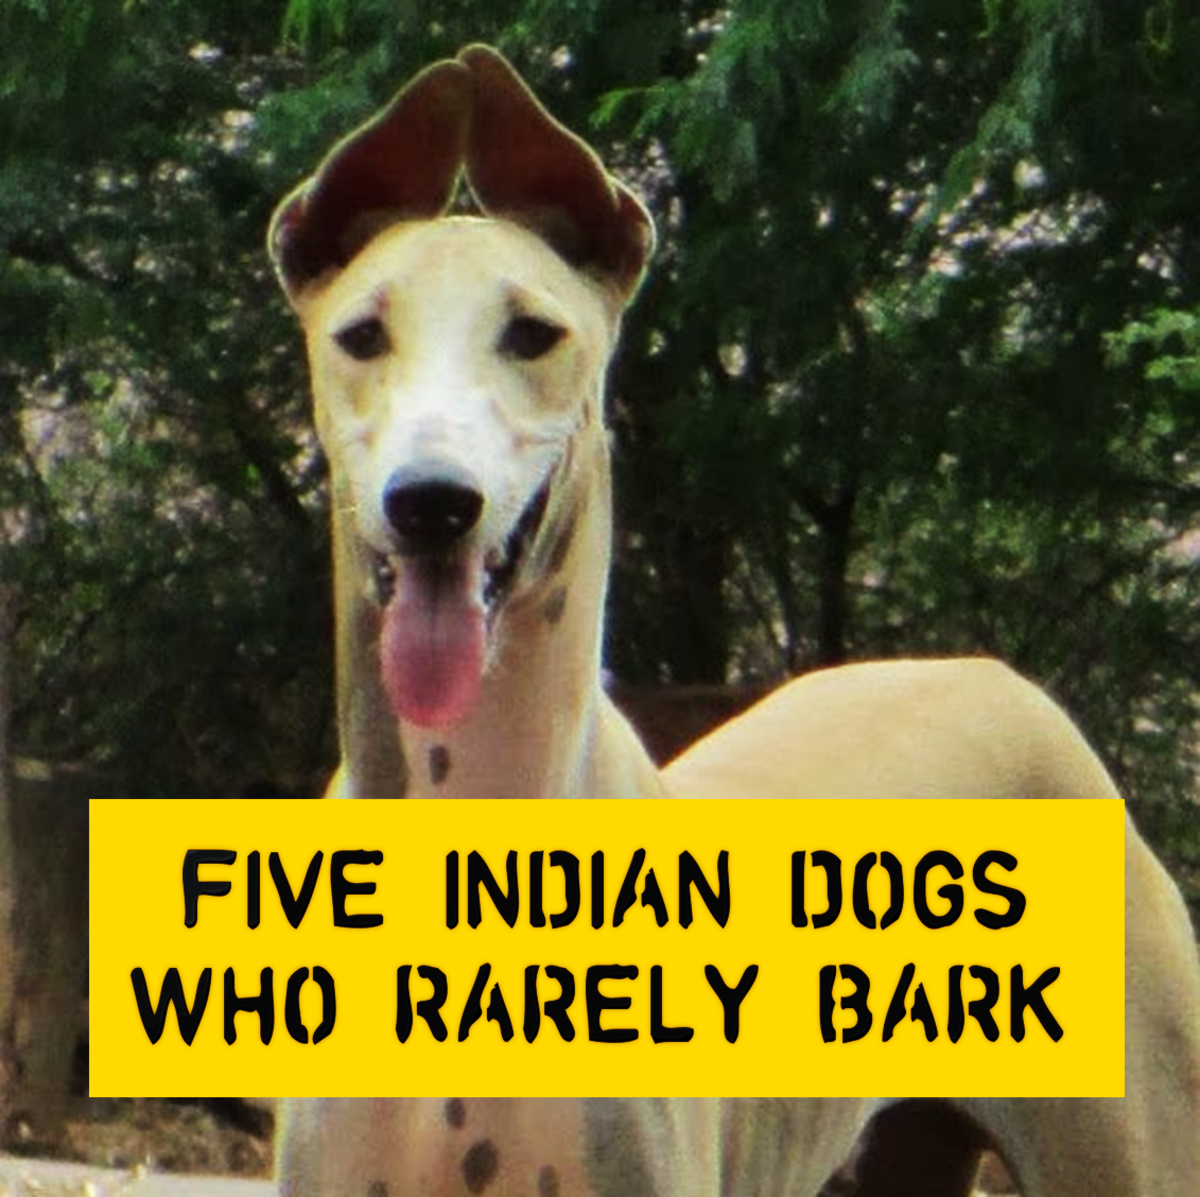 Five Indian Dogs Who Rarely Bark